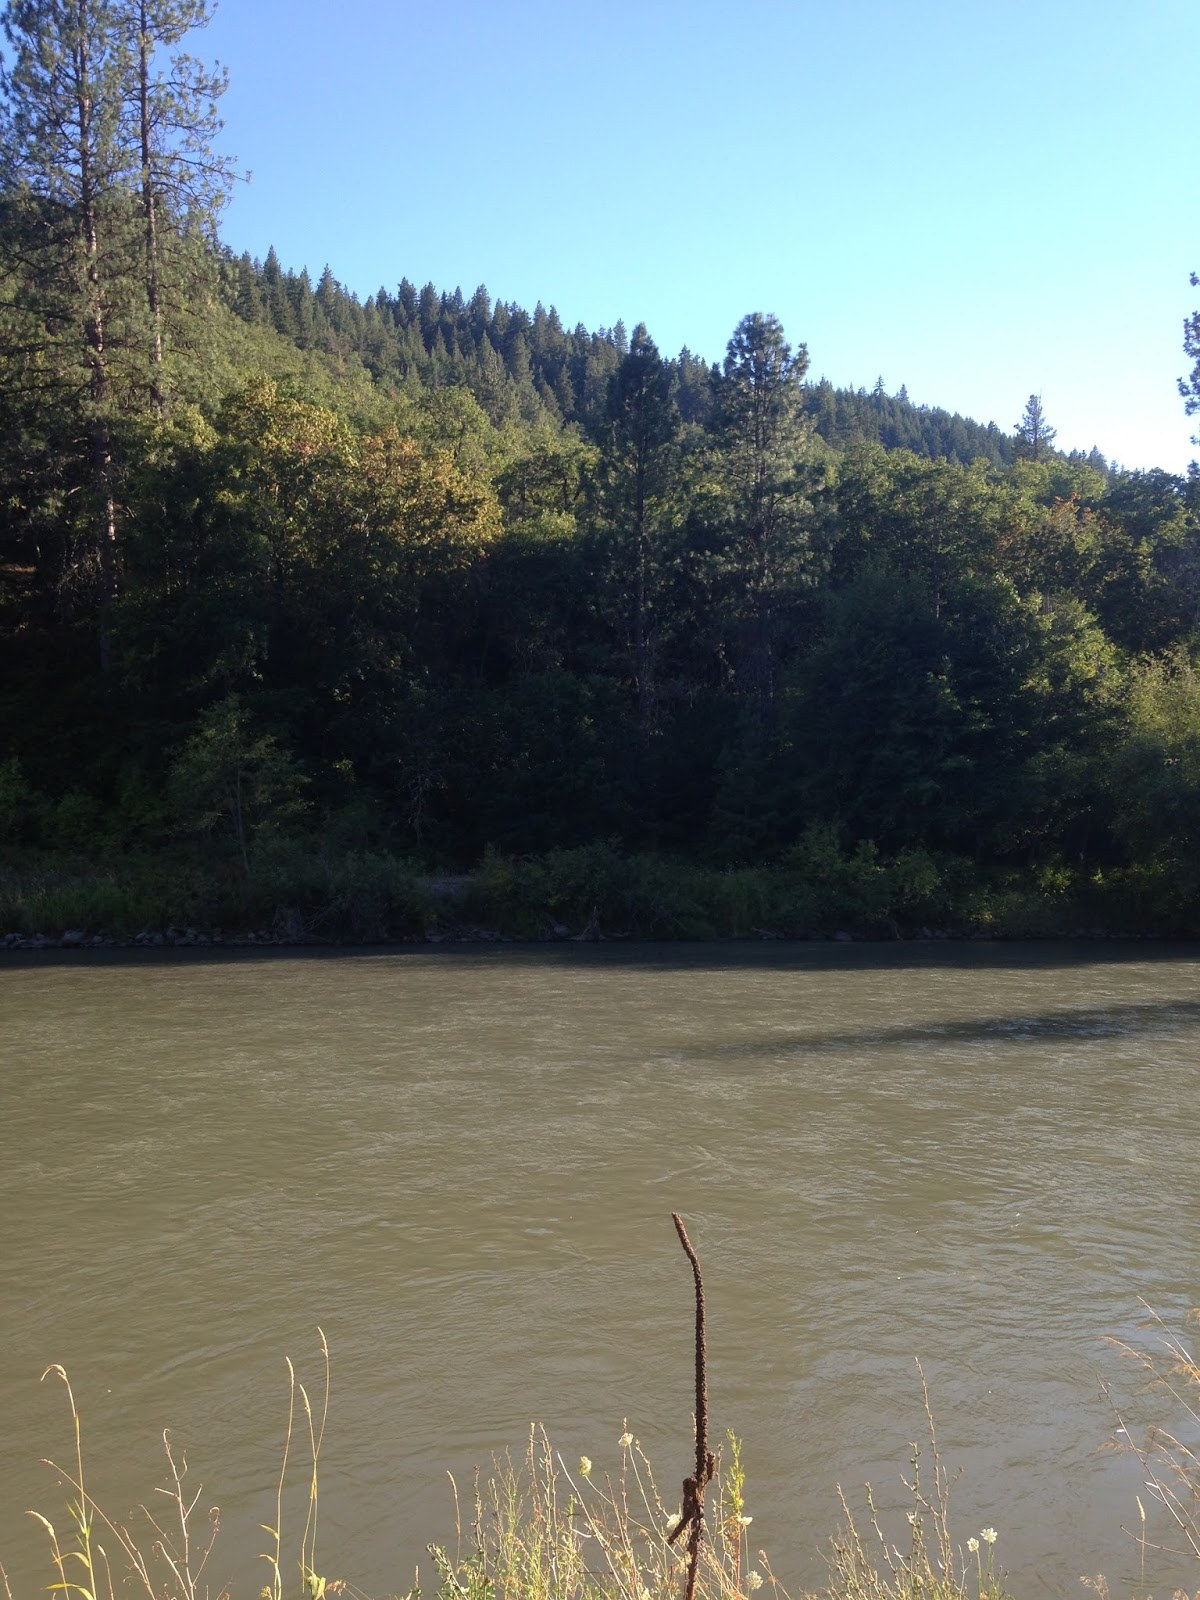 The evening hatch reports klickitat river report 8 2 16 for Klickitat river fishing report